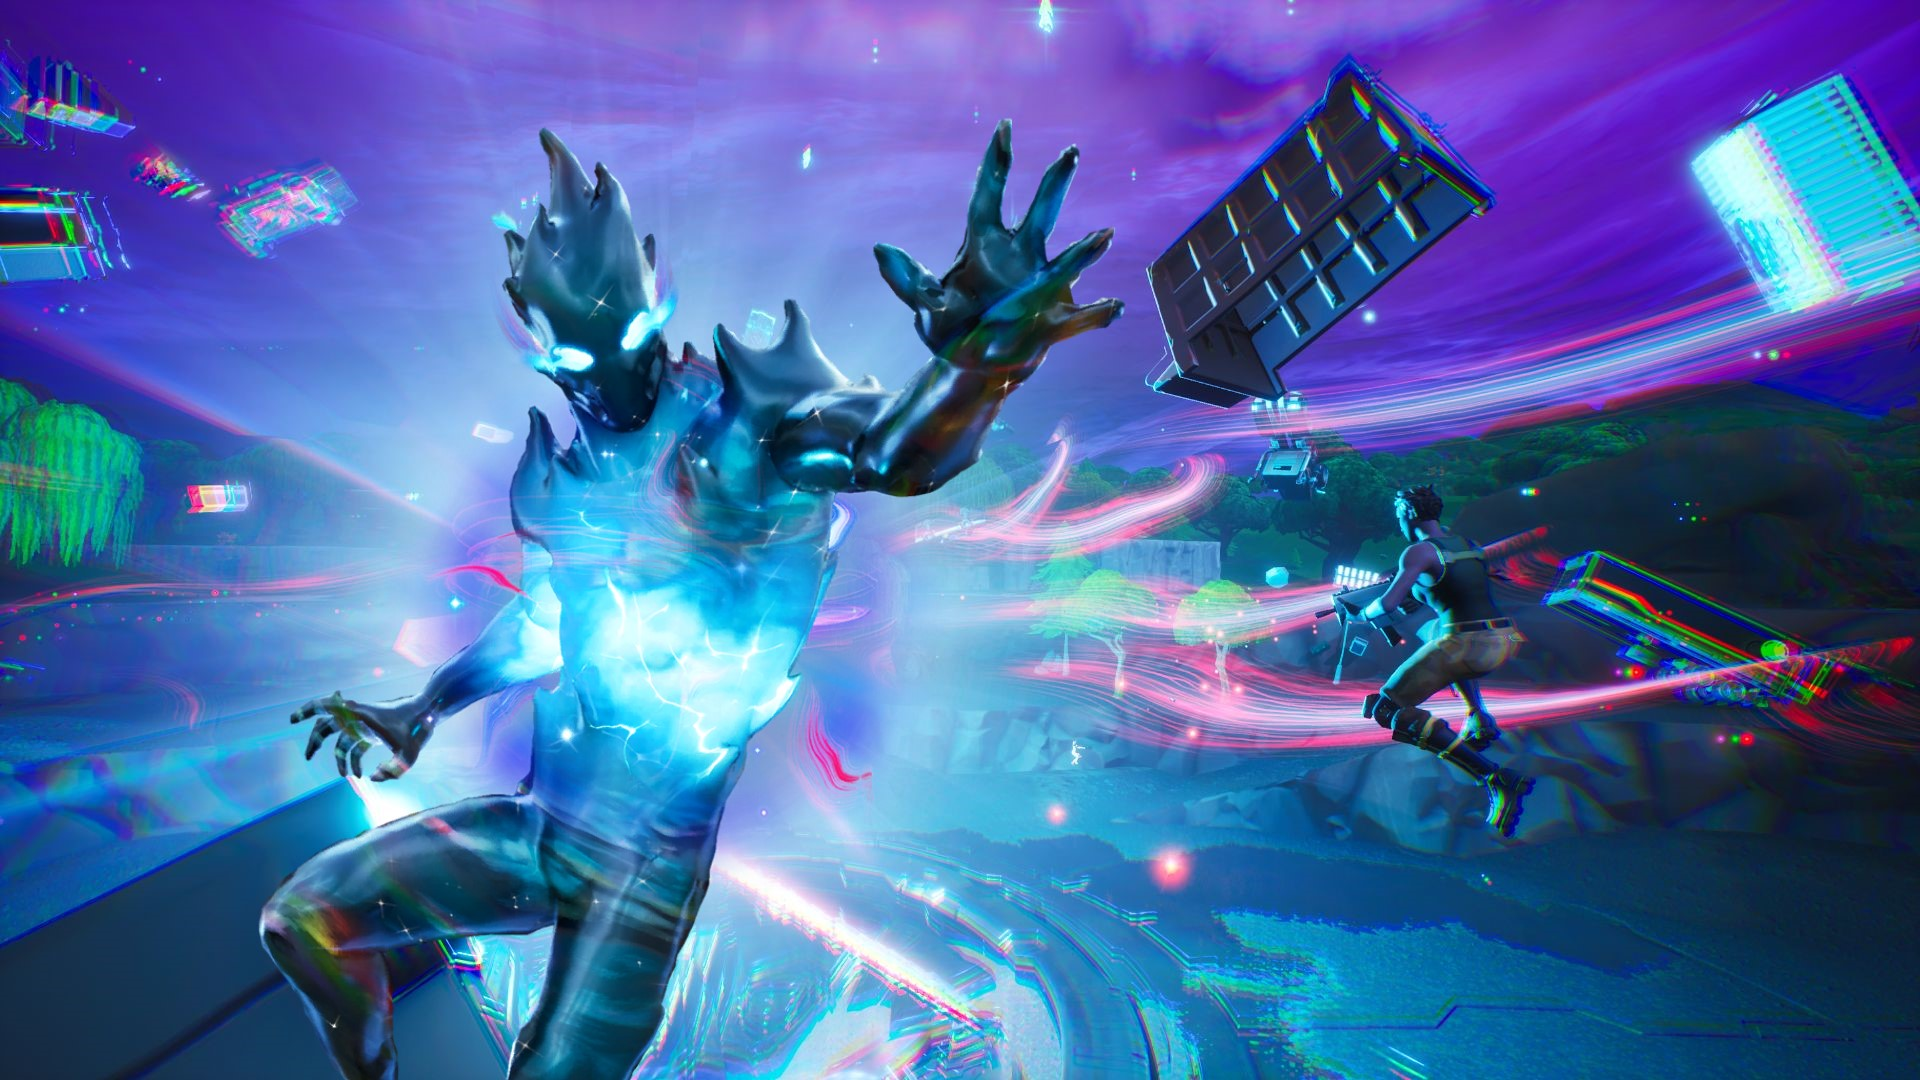 Legendary Fortnite Skin Zero Is Out All Details Hd Wallpapers Supertab Themes